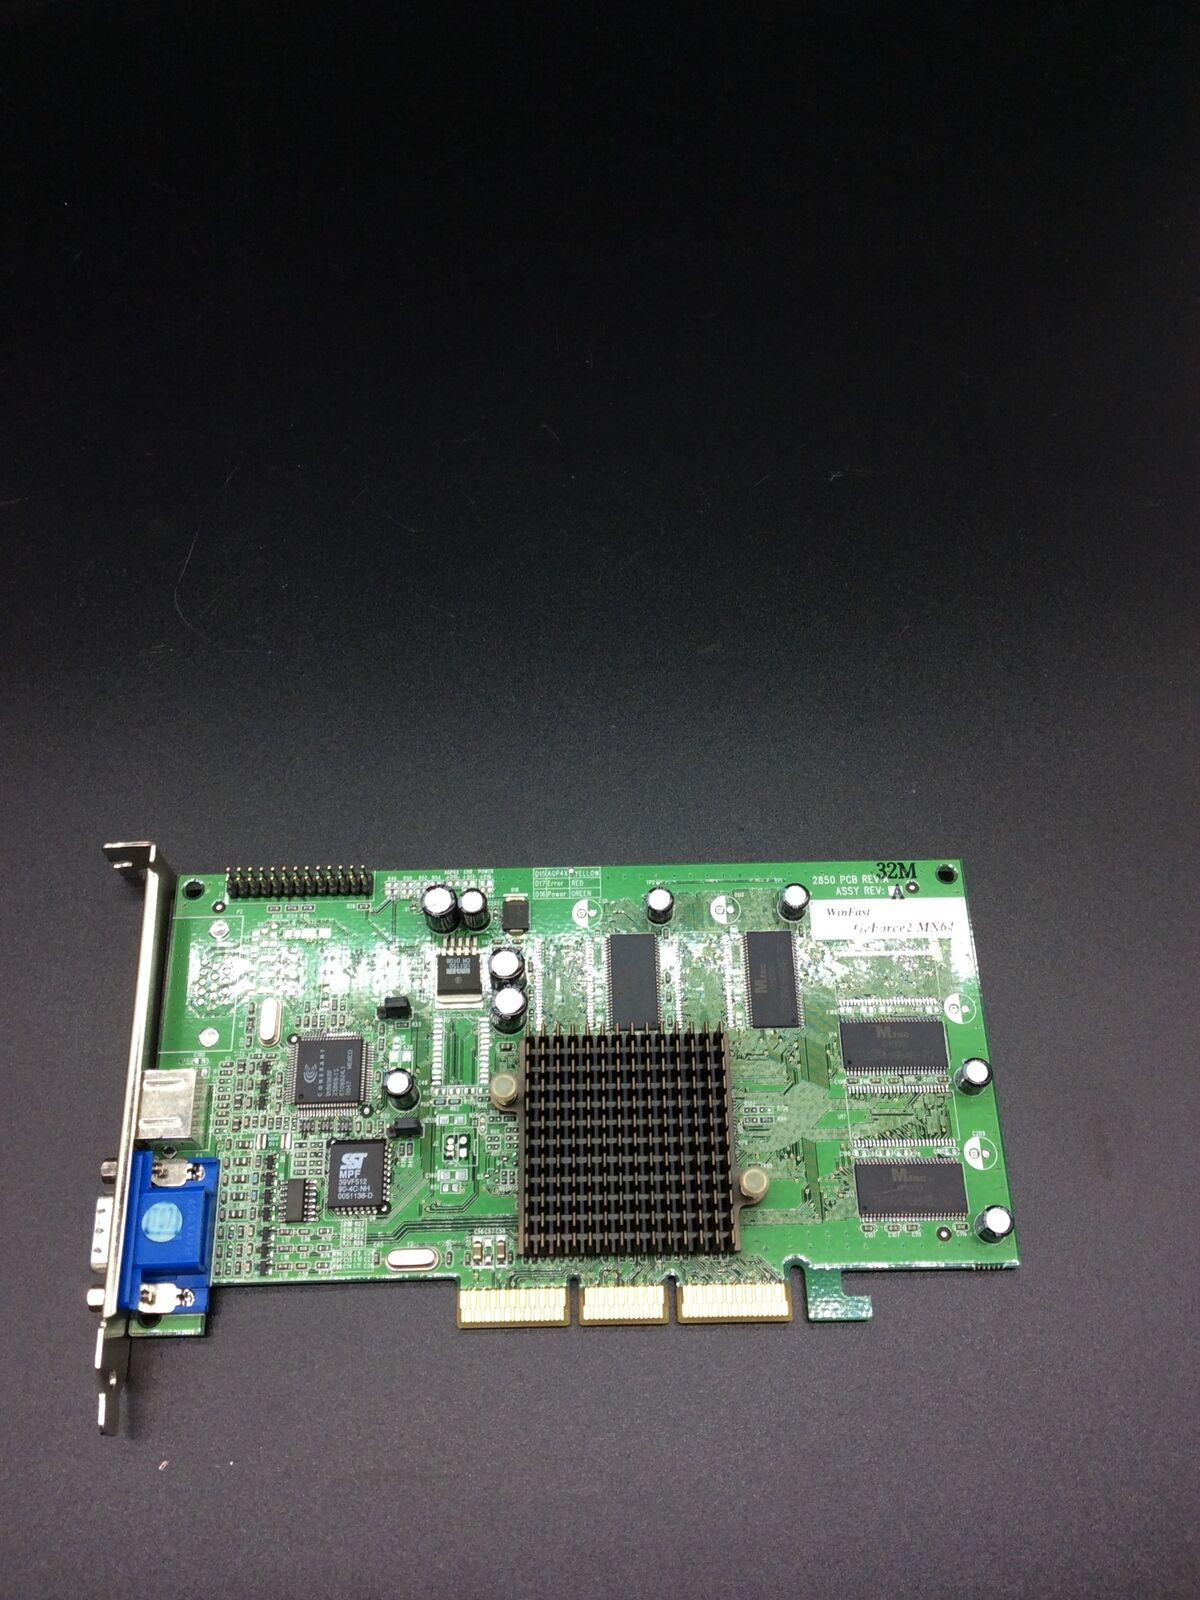 Winfast 2850 PCB REV A GeForce2 MX64 TV Out Graphics Card